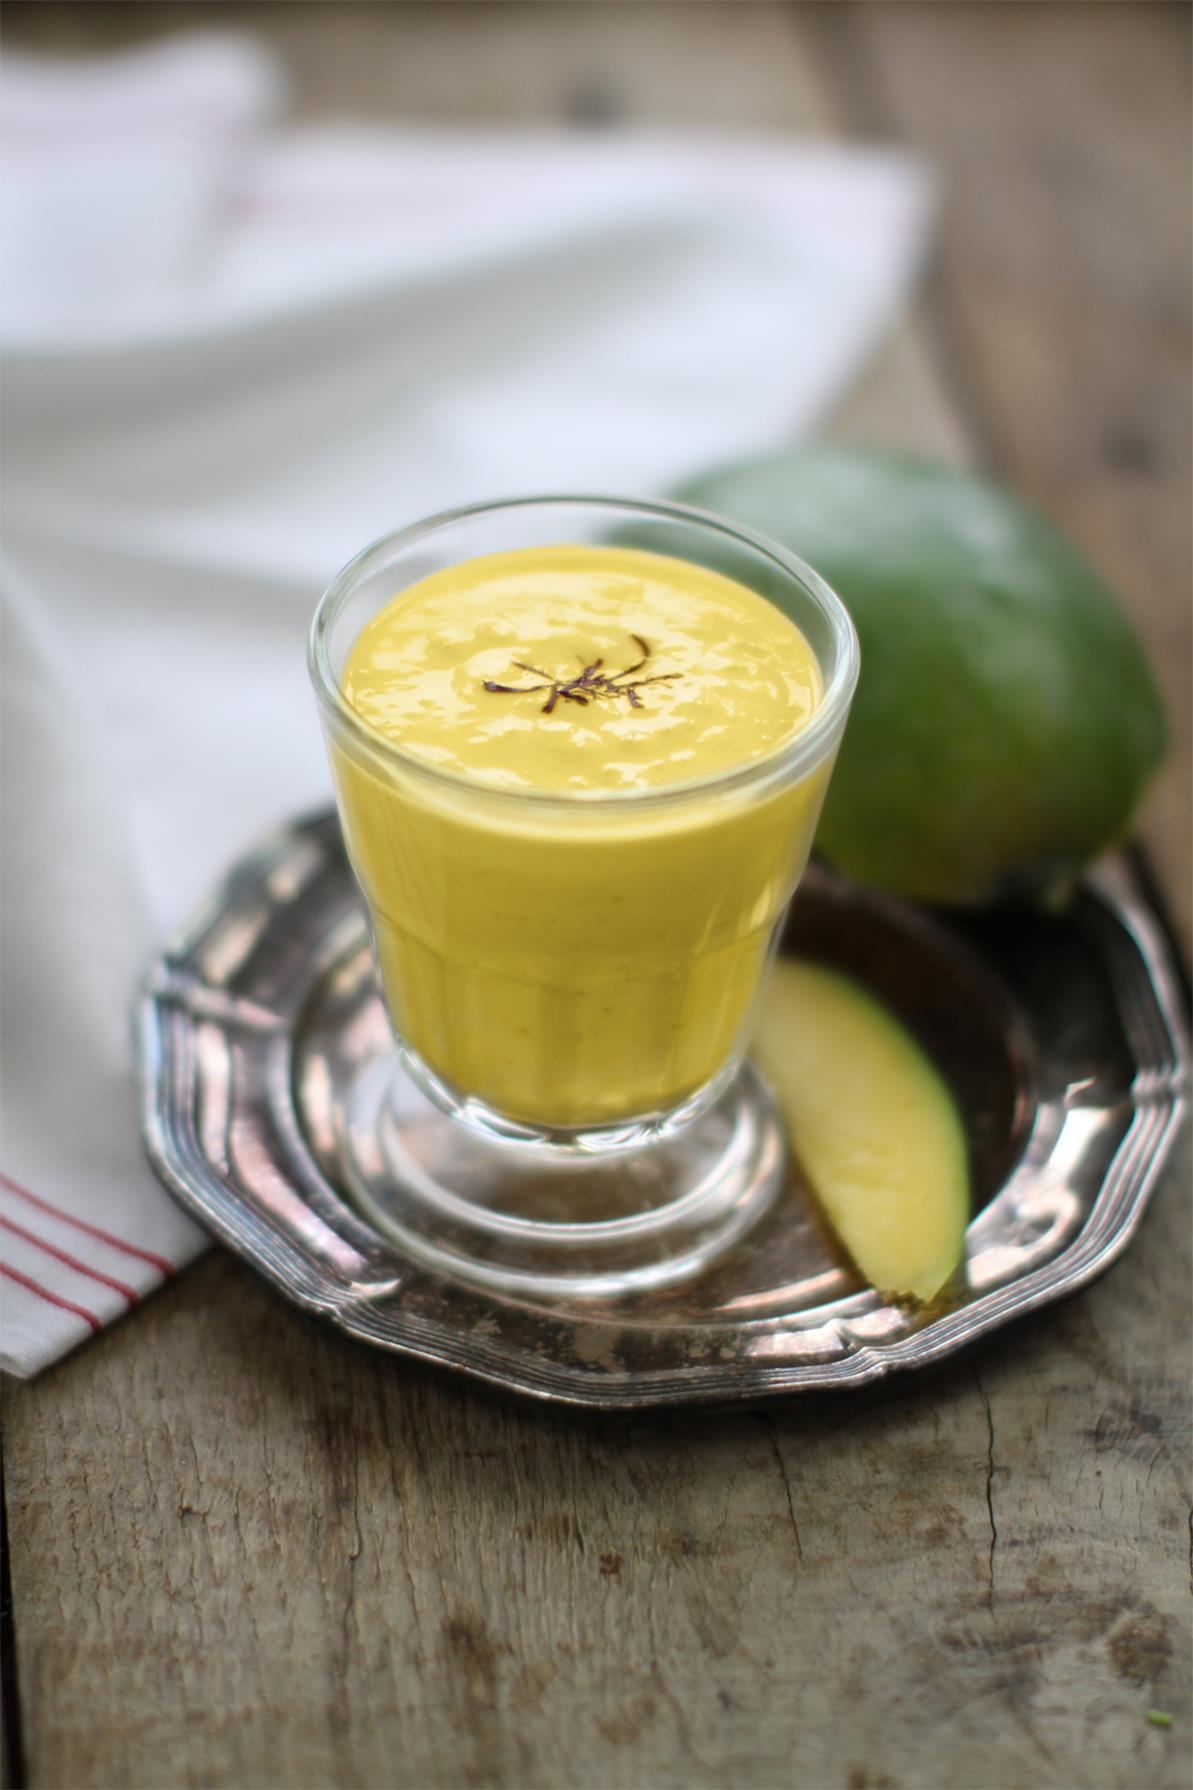 Enjoy the seasonal mango with a fun twist! Chef Hari Ghotra shares her interesting take on the ever-so-popular Mango Lassi. Here's the link to this recipe.